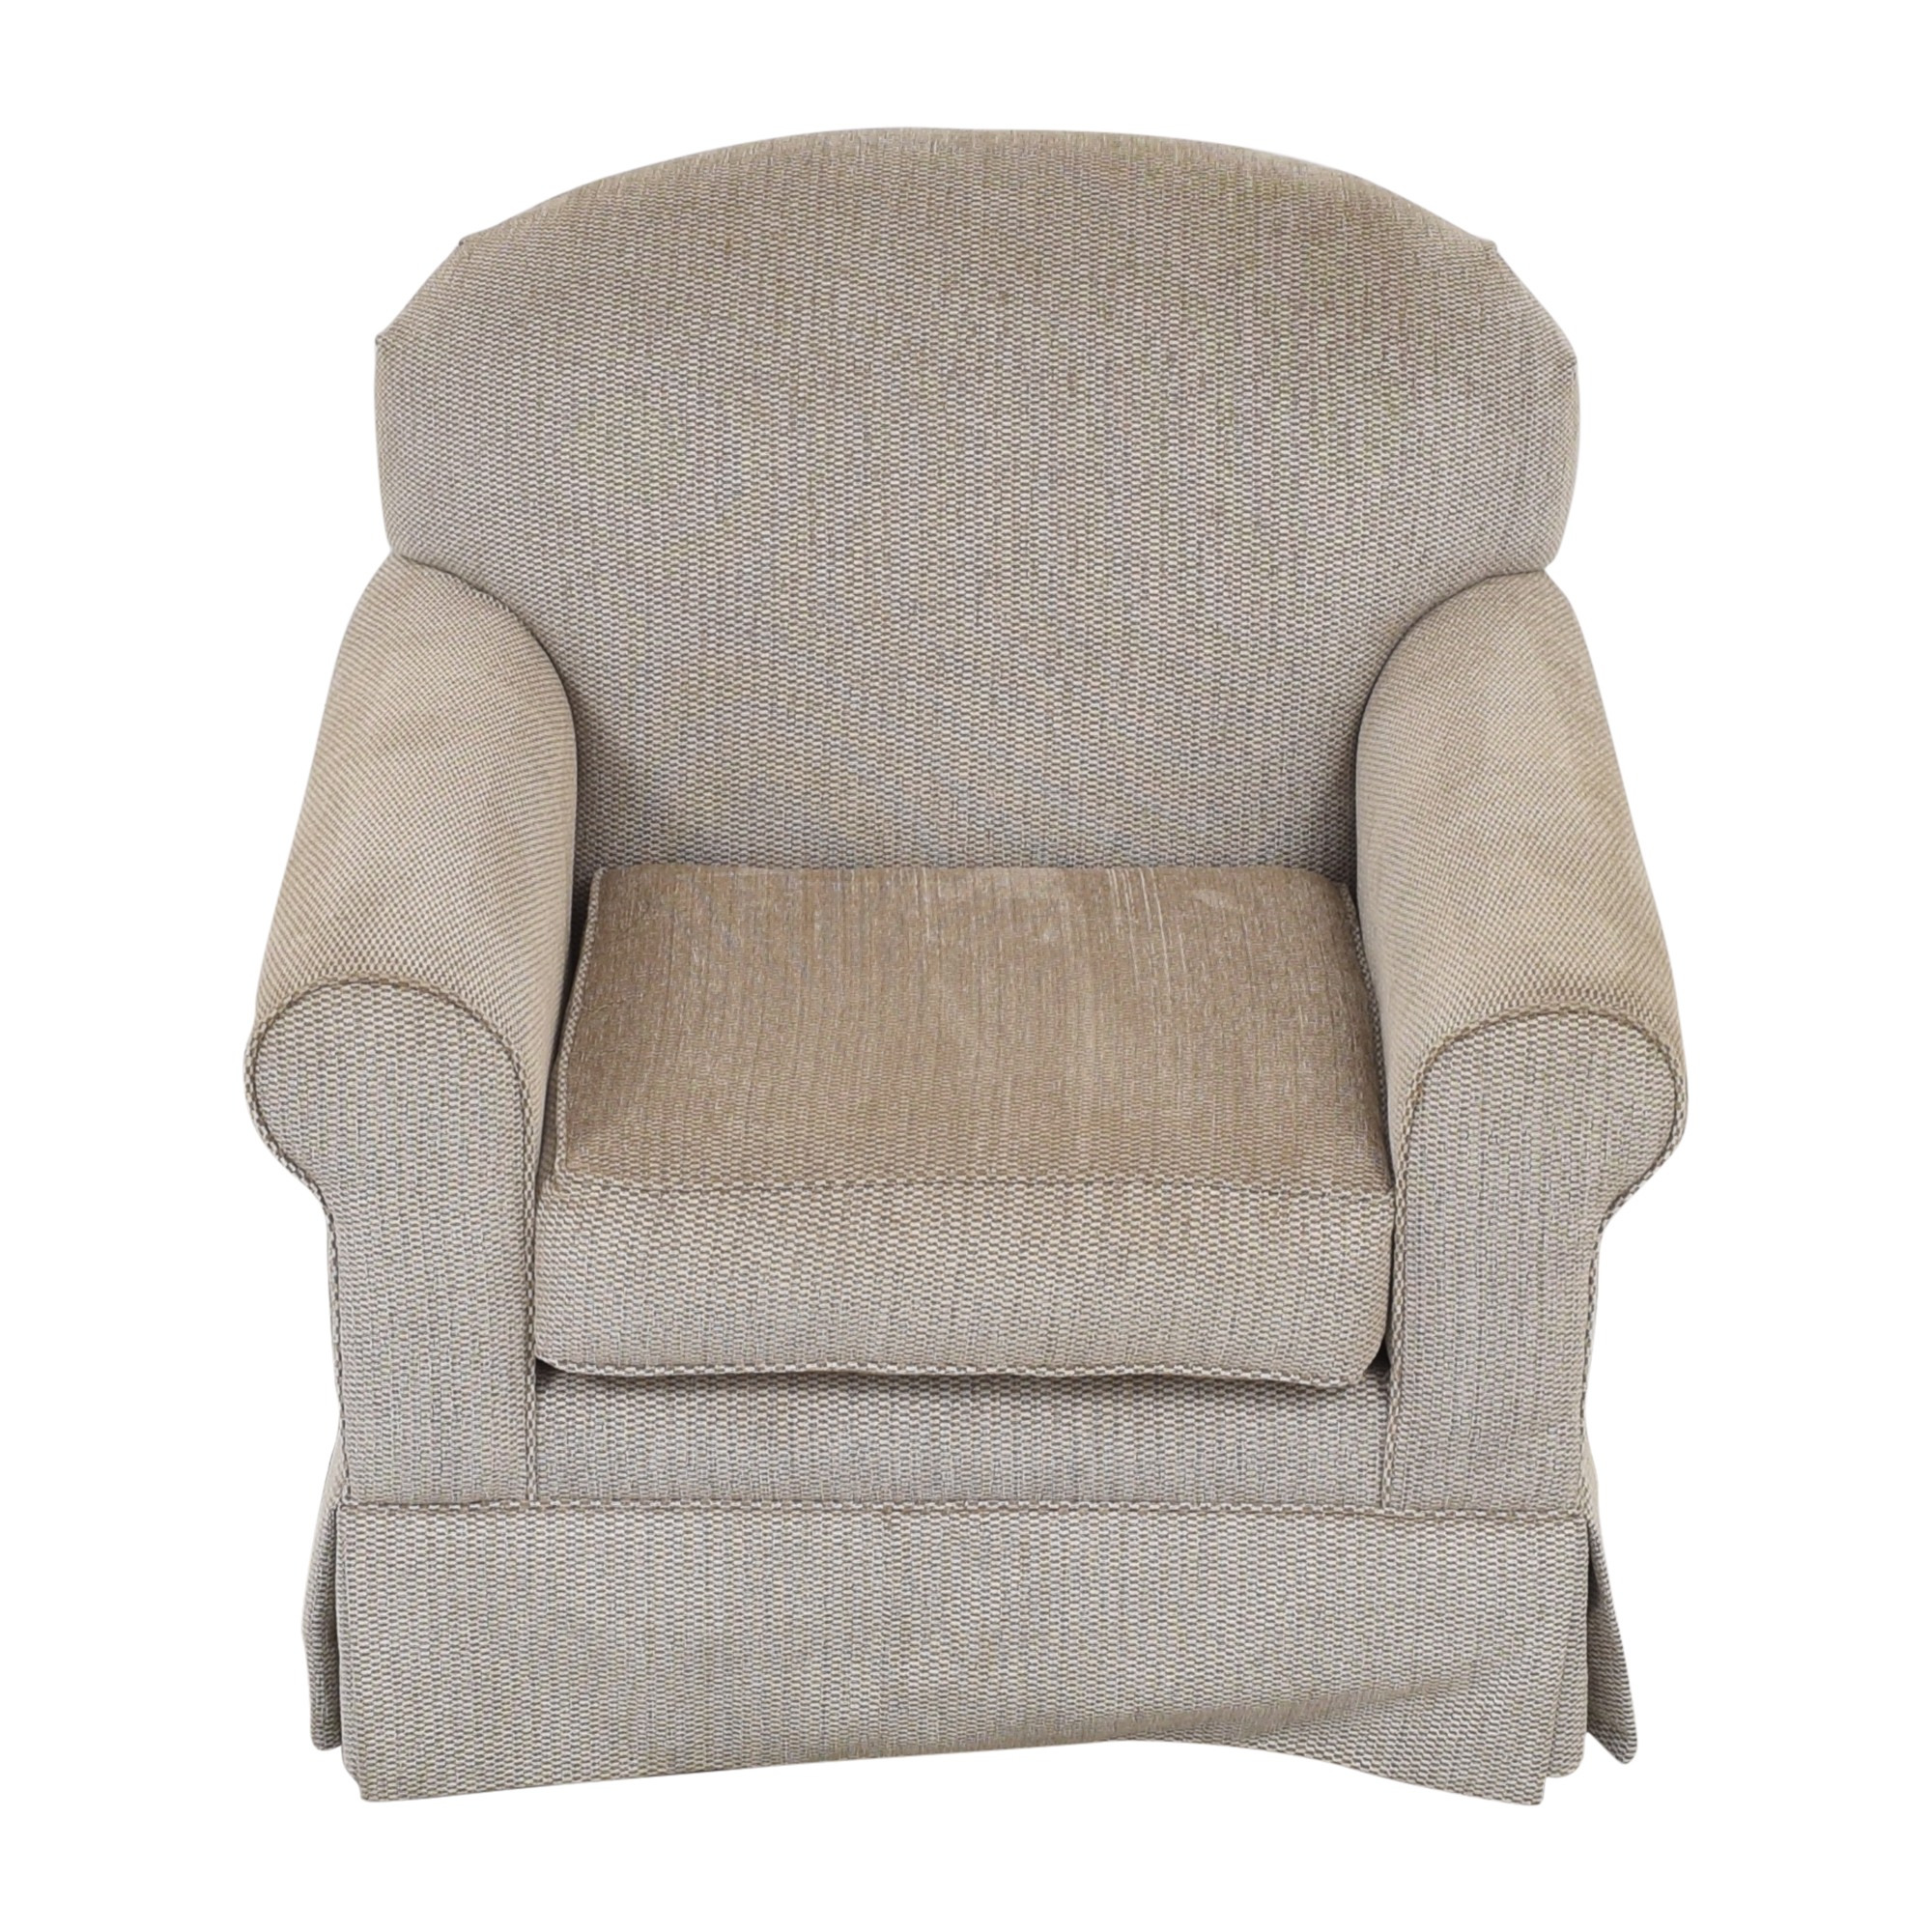 buy Raymour & Flanigan Armchair Raymour & Flanigan Accent Chairs